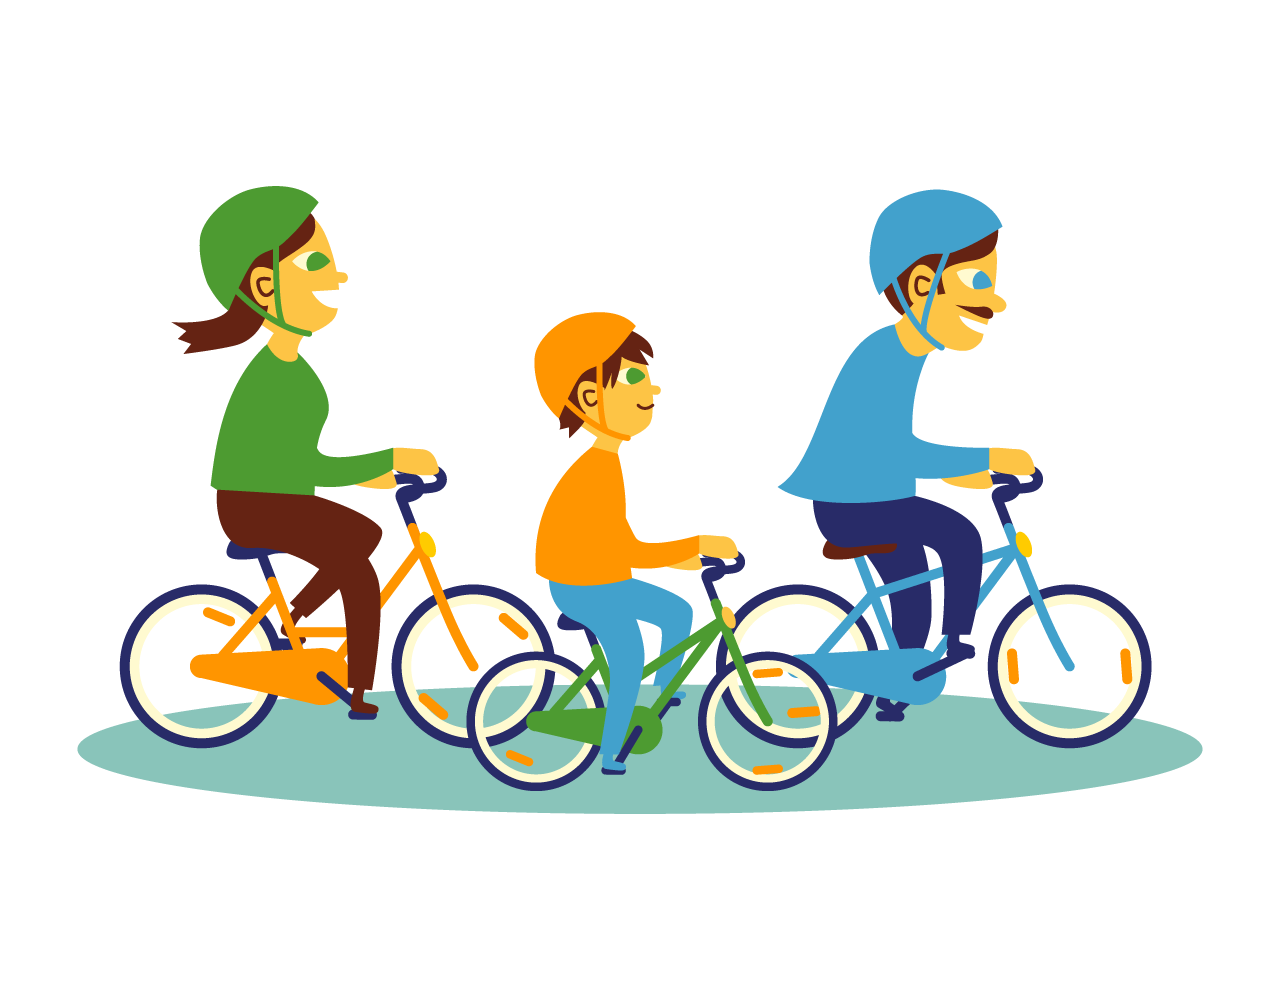 A family is riding bike together.